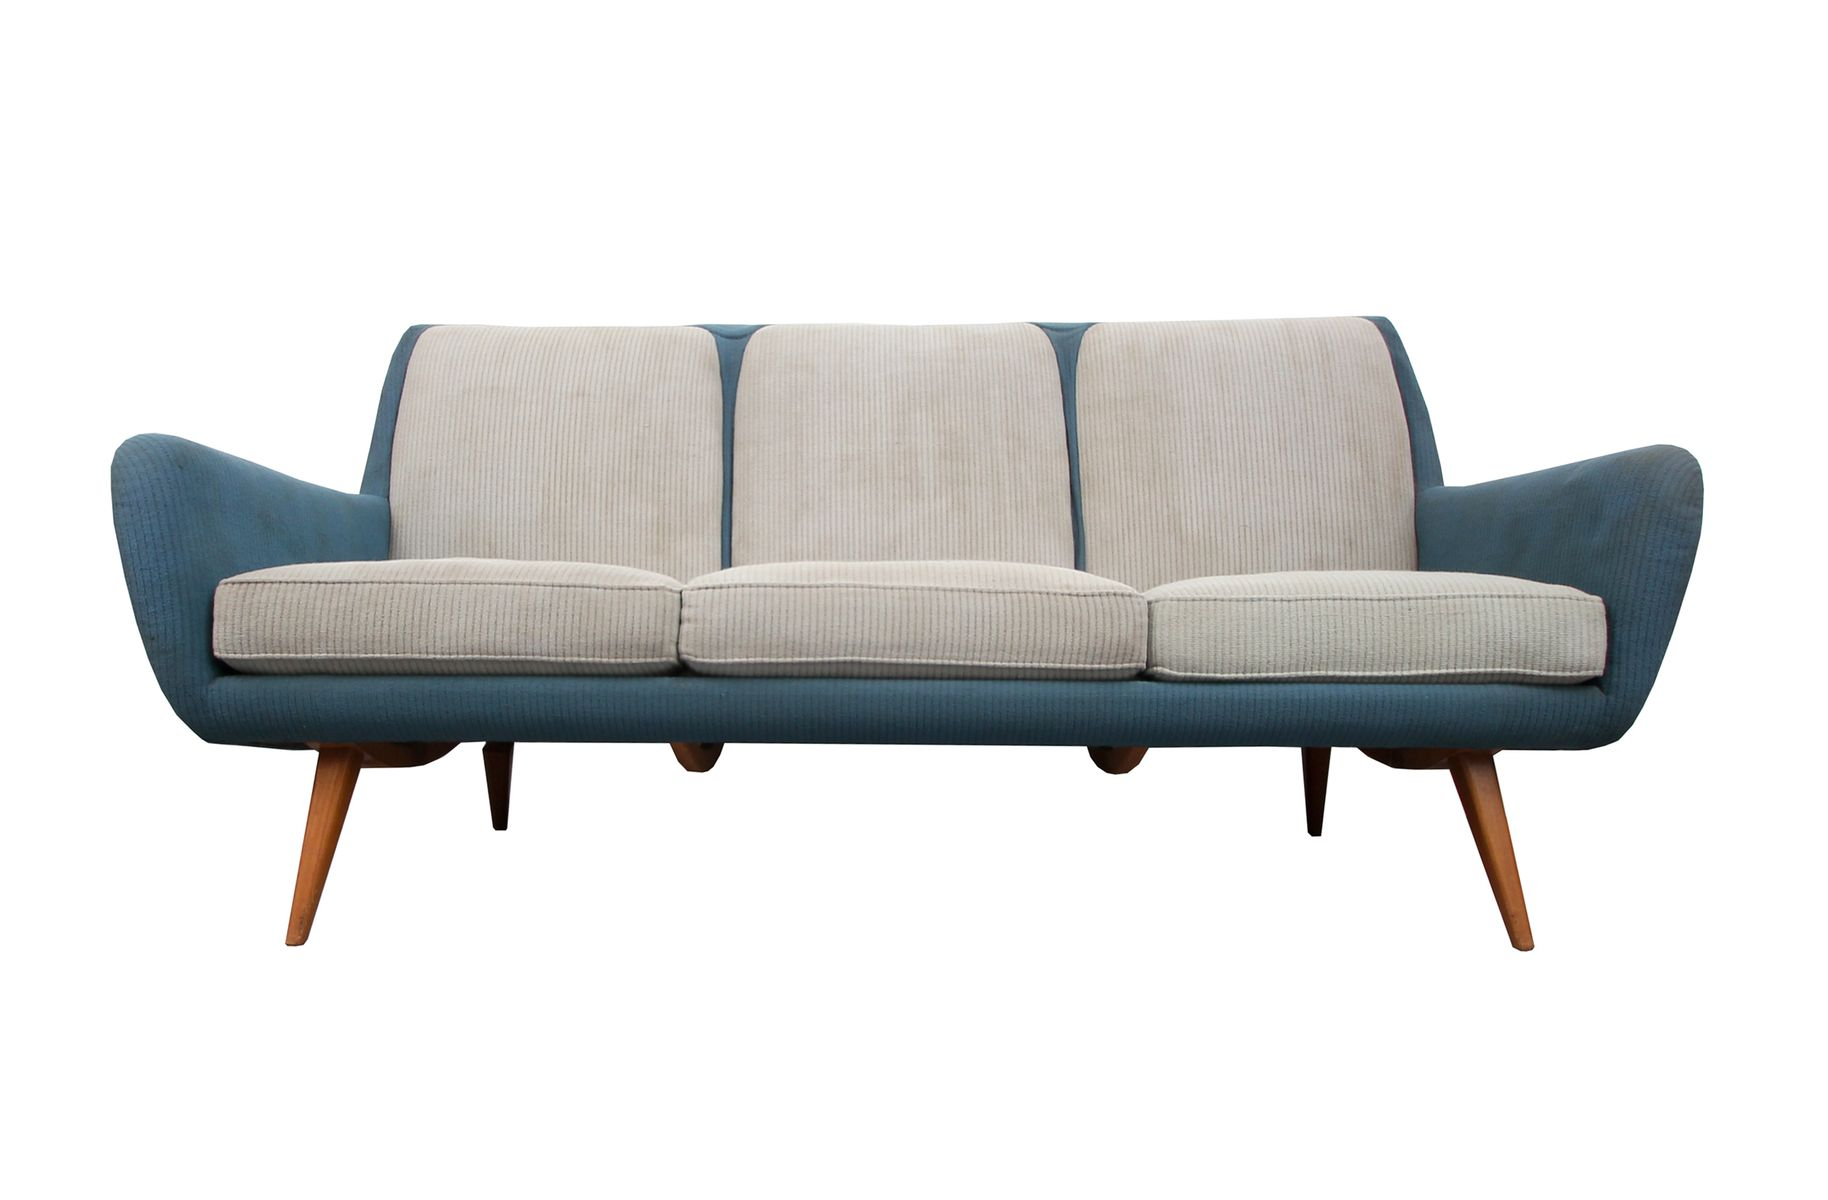 Sofa in Pigeon Blue-Light Gray, 1950s for sale at Pamono